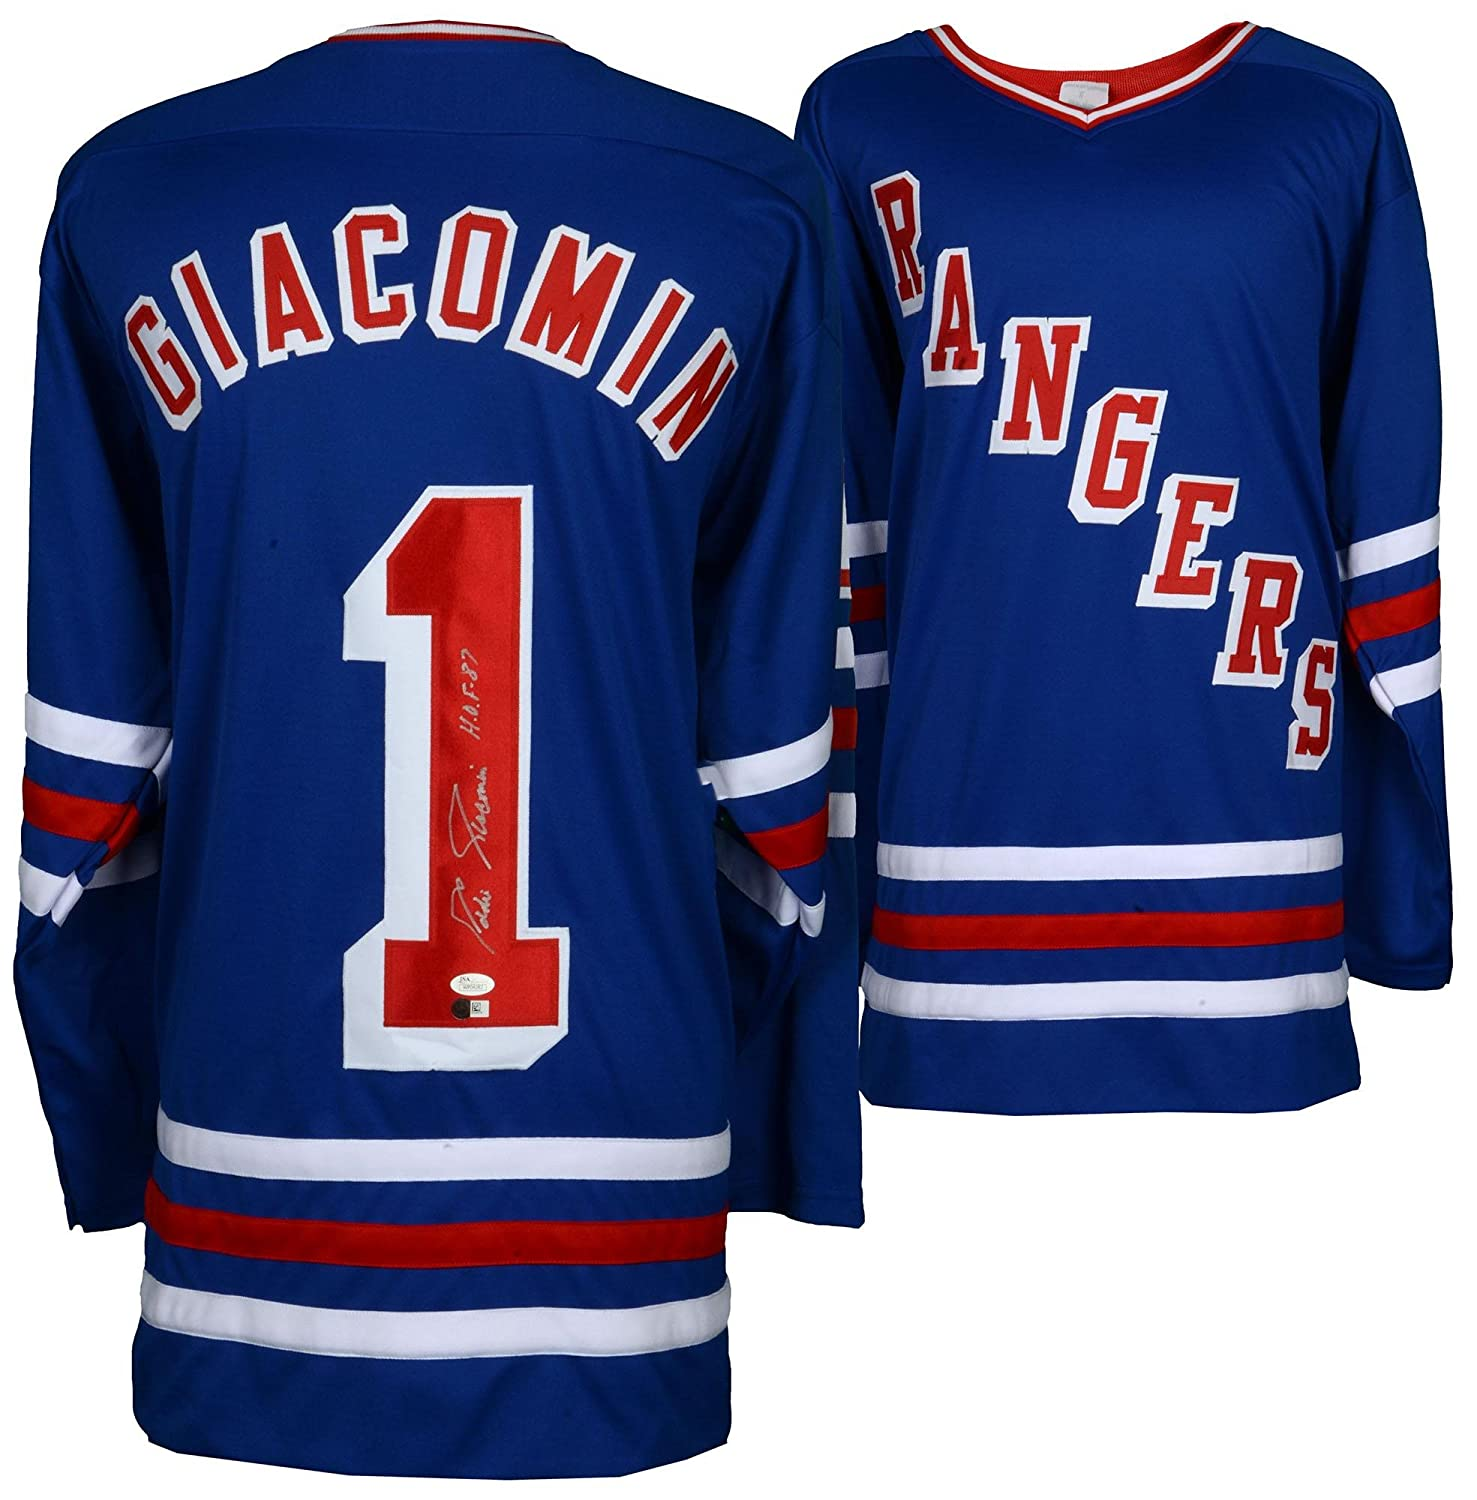 Eddie Giacomin New York Rangers Autographed Blur Jersey with HOF Inscription  - SMI - Autographed NHL Jerseys at Amazon s Sports Collectibles Store 89a5d0285